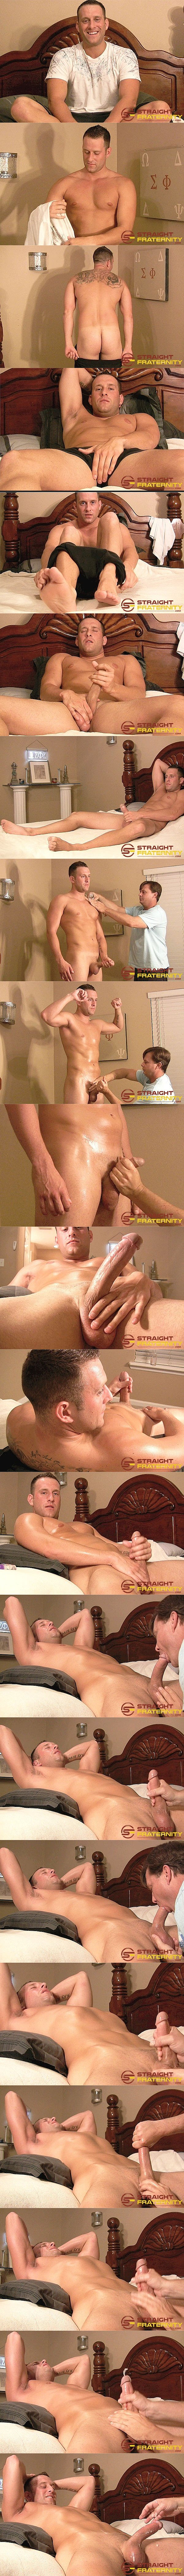 Straightfraternity - Ryan explores and fondles hot Navy stud Aiden's fit naked body, sucks and strokes Aiden's cock before jerks a creamy load out of Aiden's hard pole 02